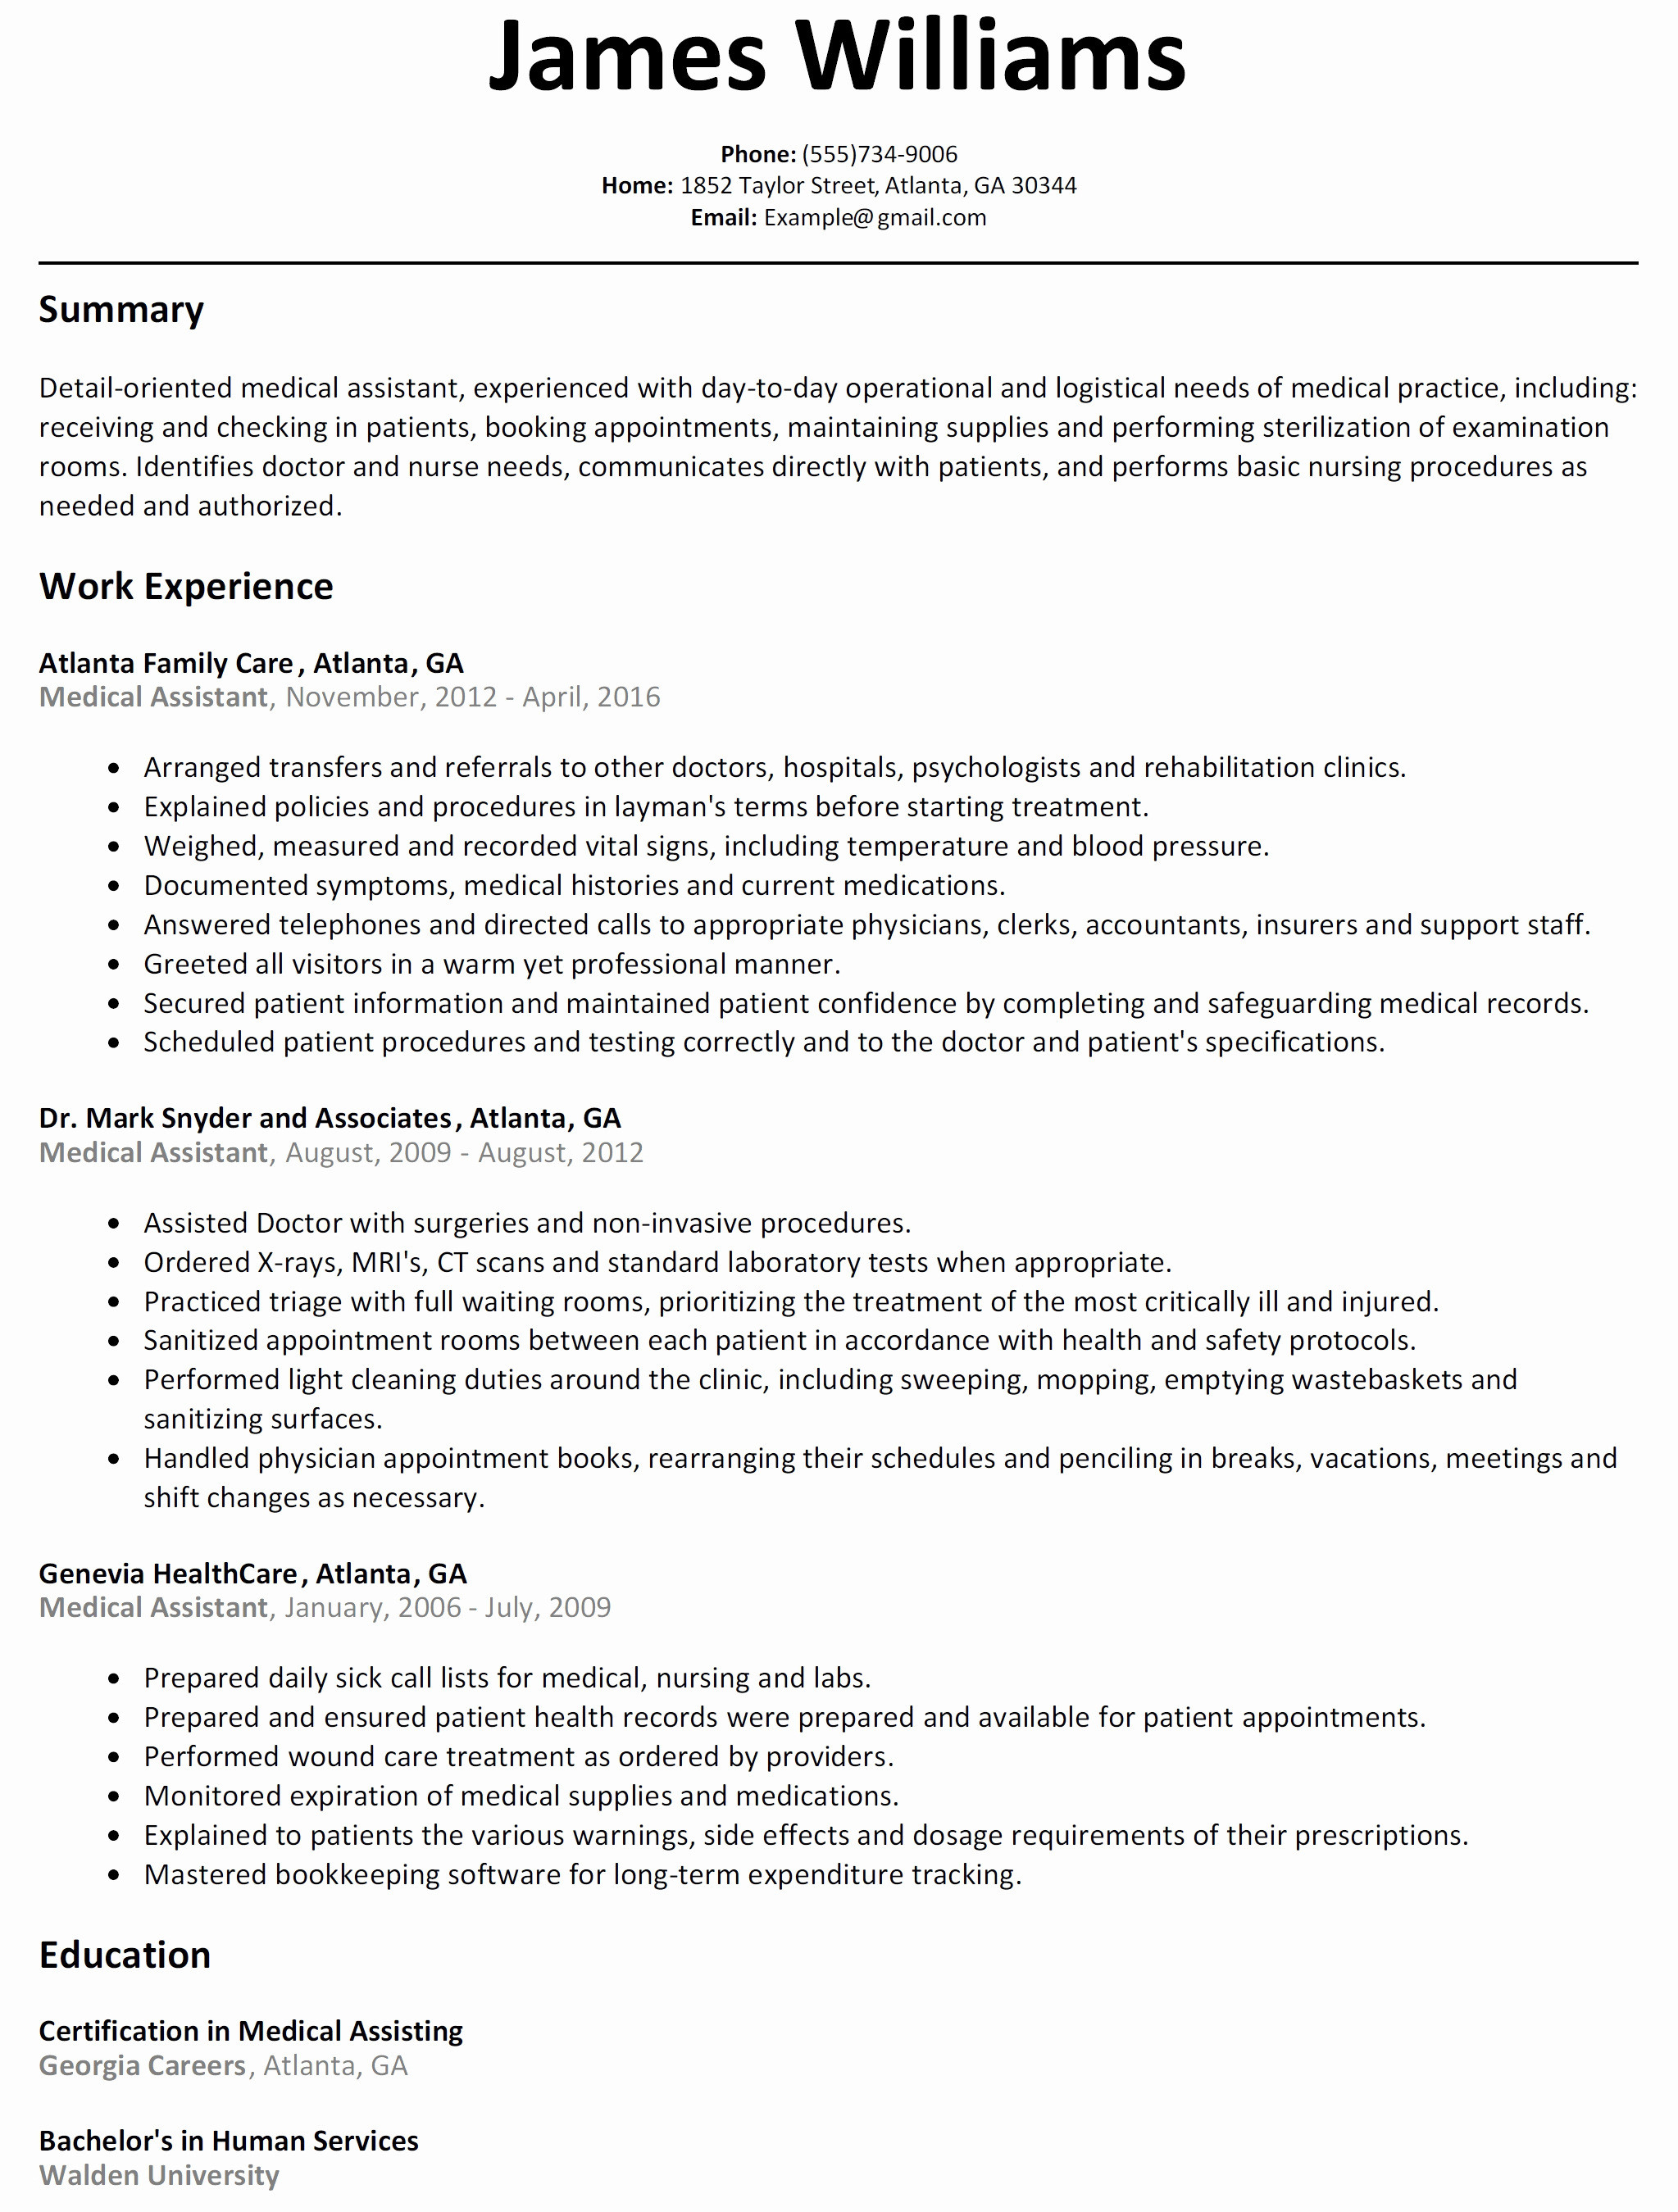 Awesome Free Resume Templates - Awesome Free Resume Templates Valid Academic Resume Examples Awesome